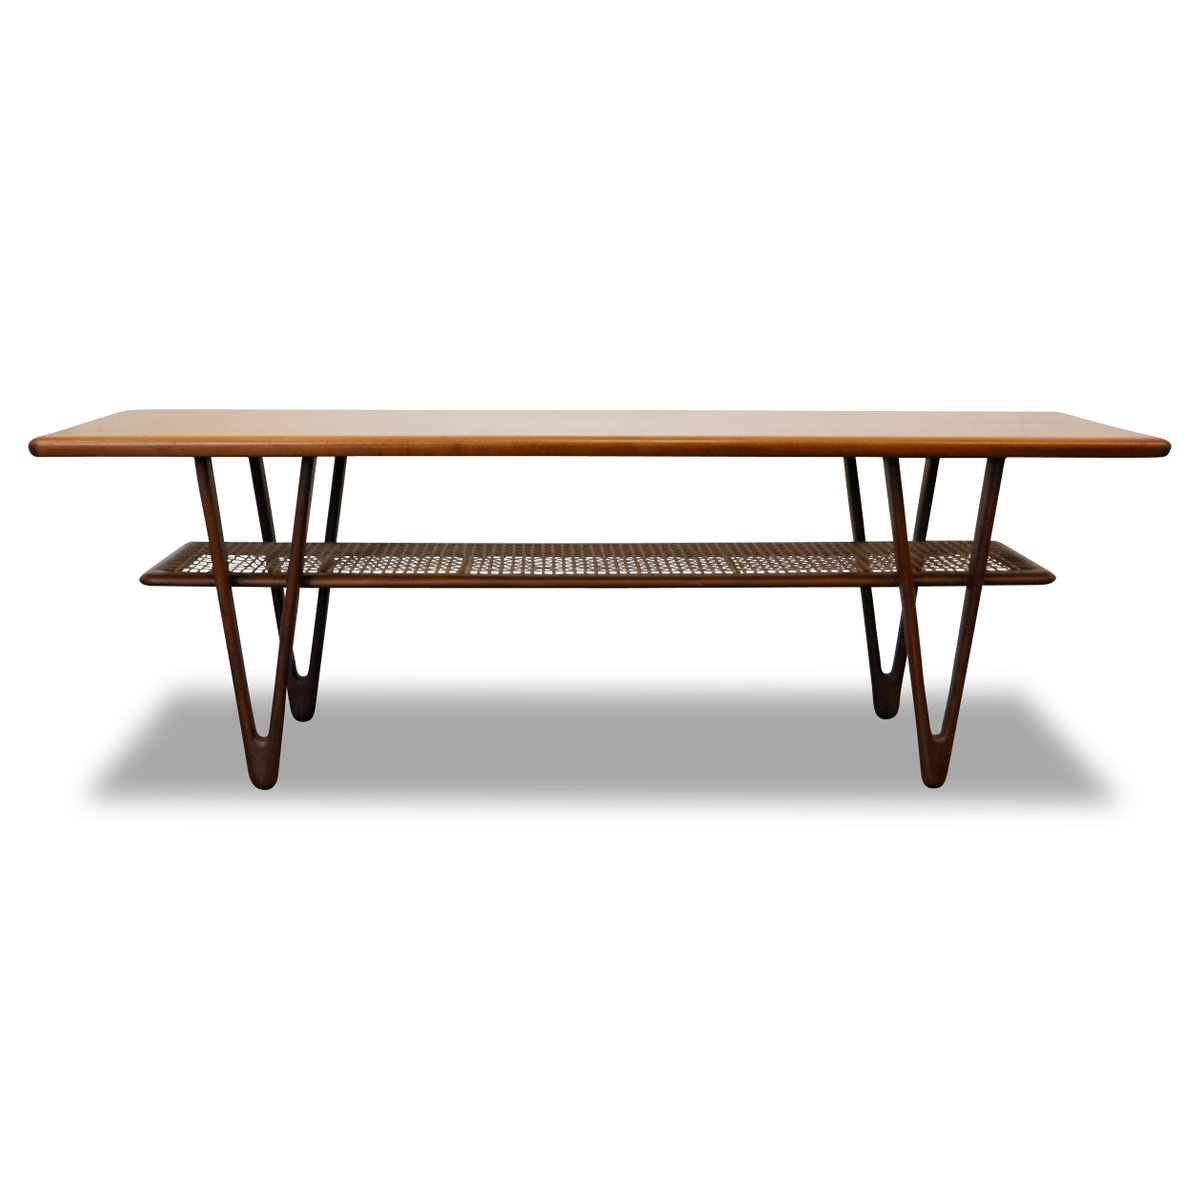 Mid Century Two Tone Coffee Table By Weiman: Mid-Century Modern Danish Teak Coffee Table, 1950s For